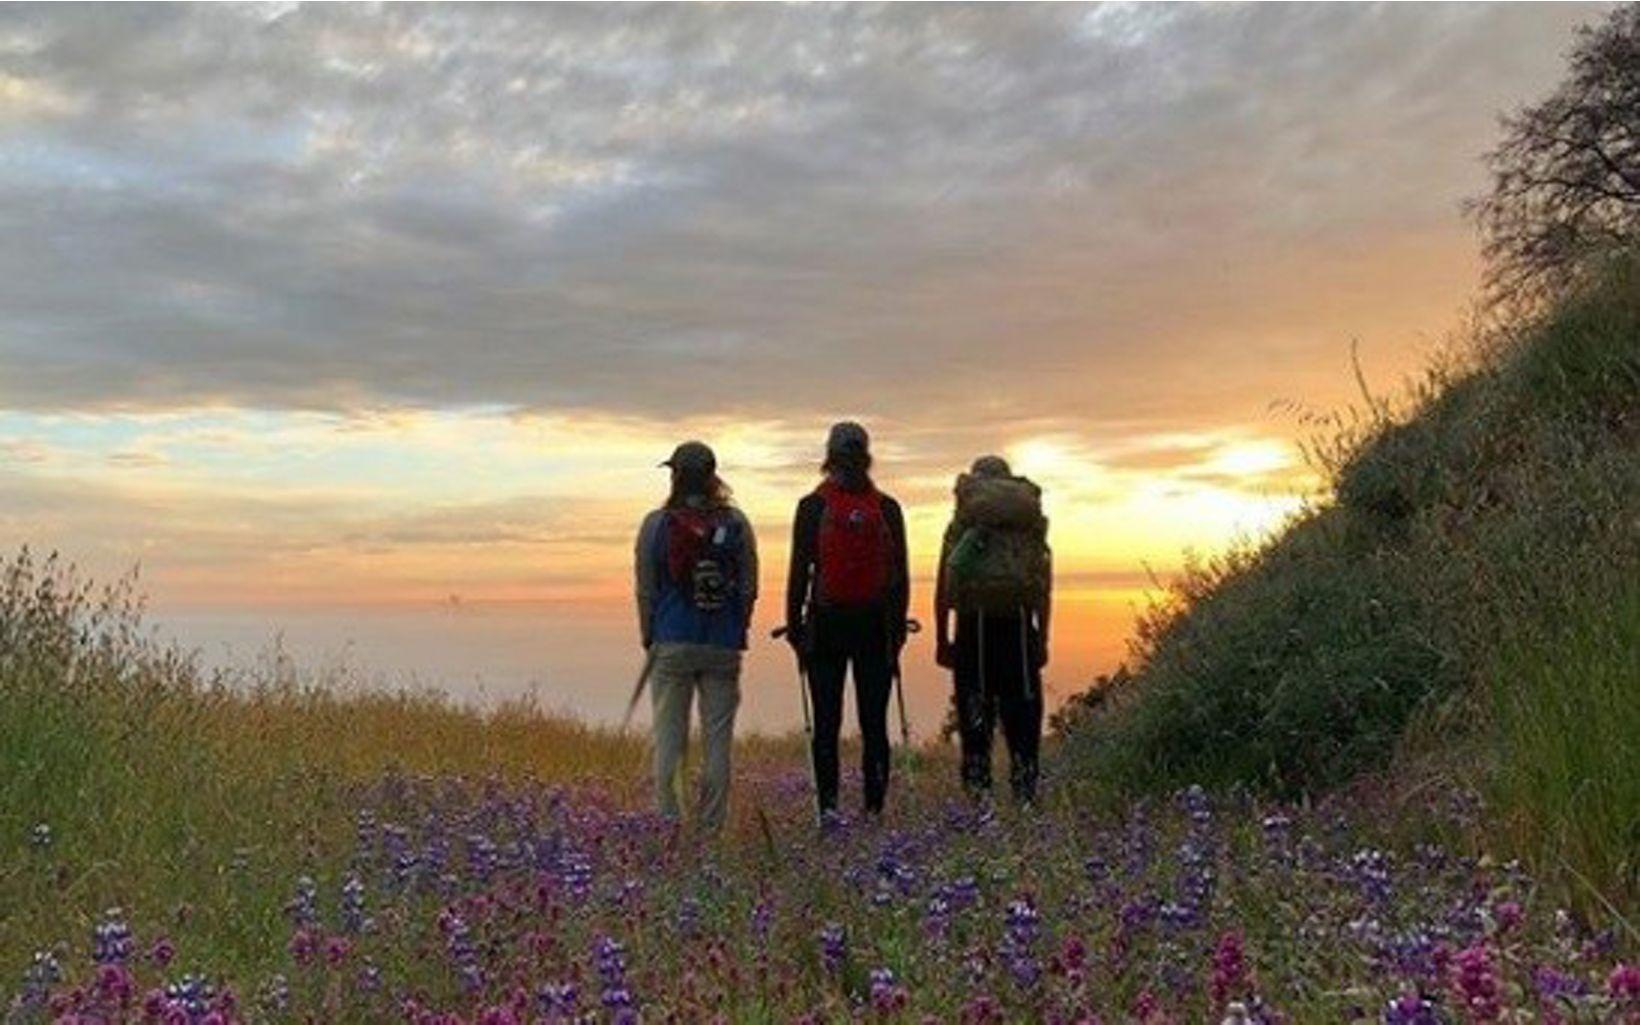 My friends and I love watching the sunset. You can catch amazing views on the Bluffs Trail at Andrew Molera State Park.